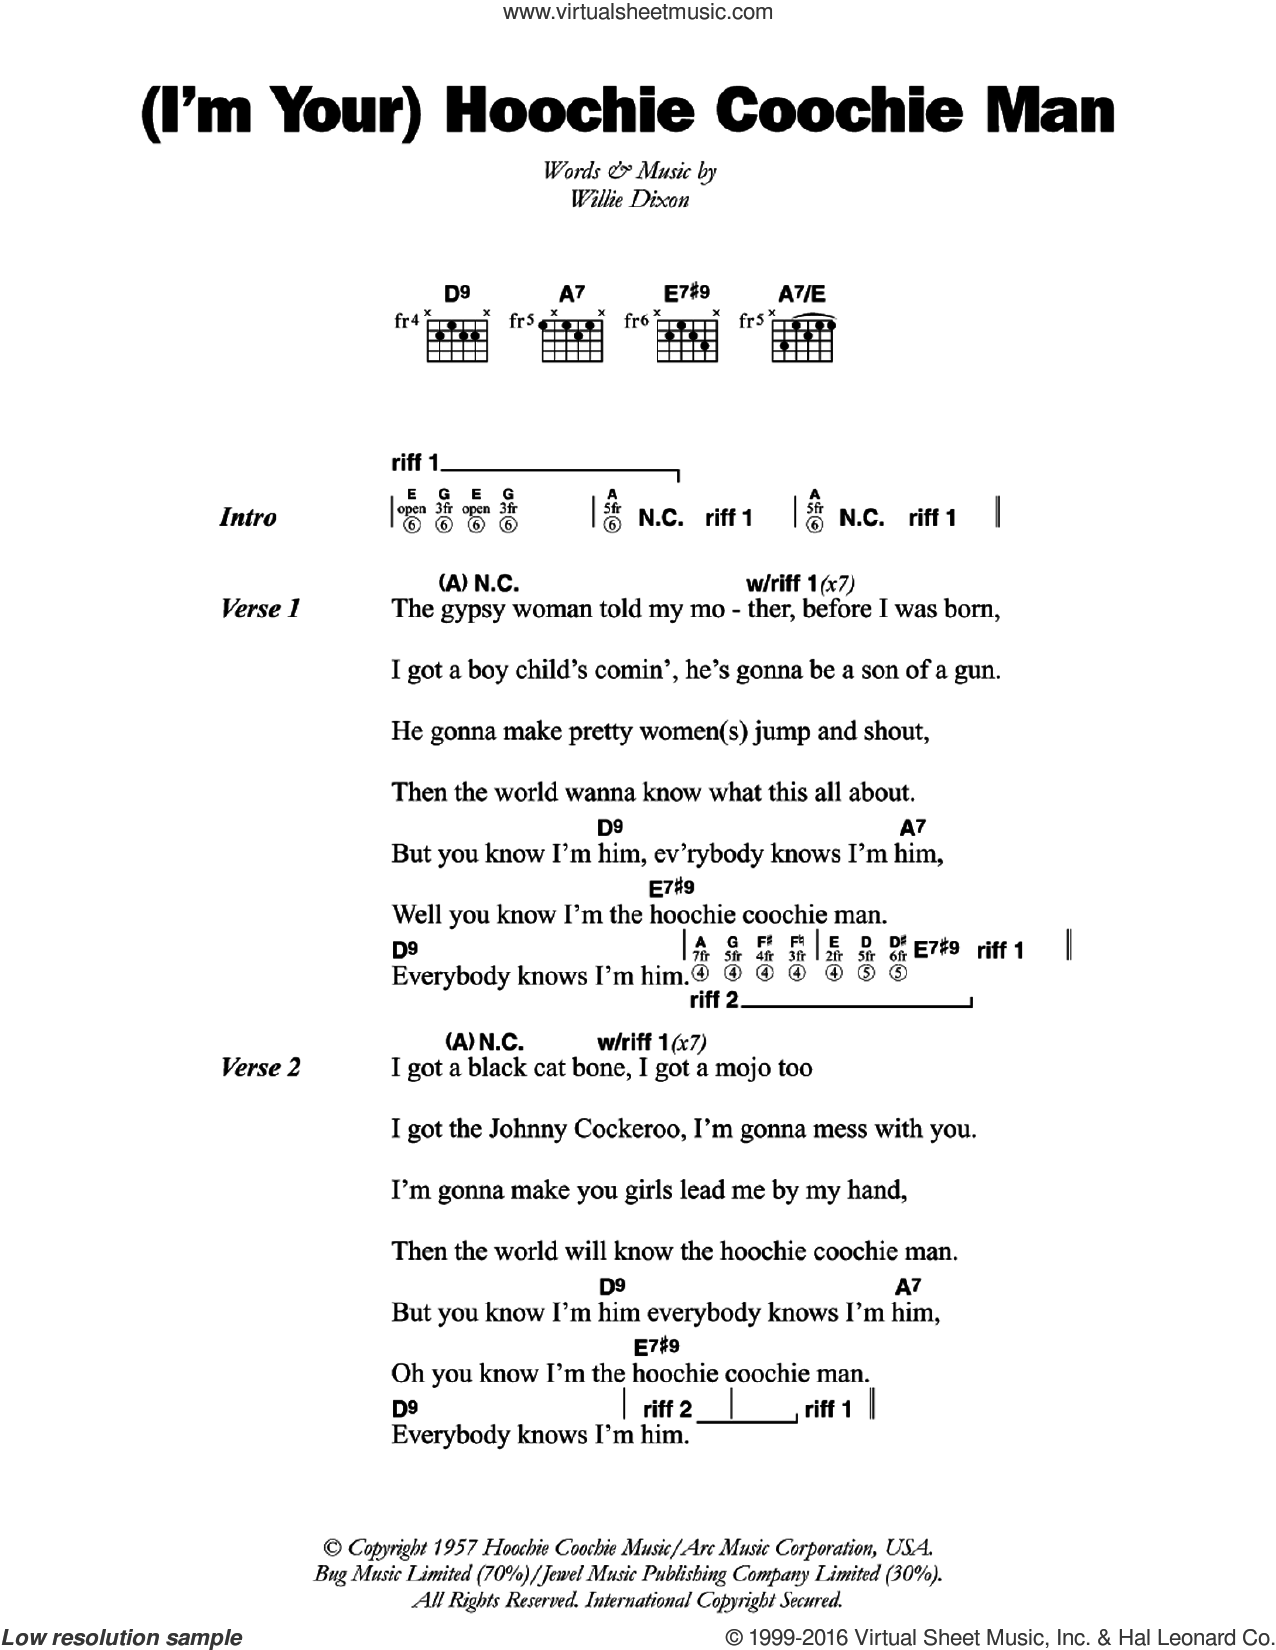 (I'm Your) Hoochie Coochie Man sheet music for guitar (chords) by Willie Dixon and Muddy Waters. Score Image Preview.